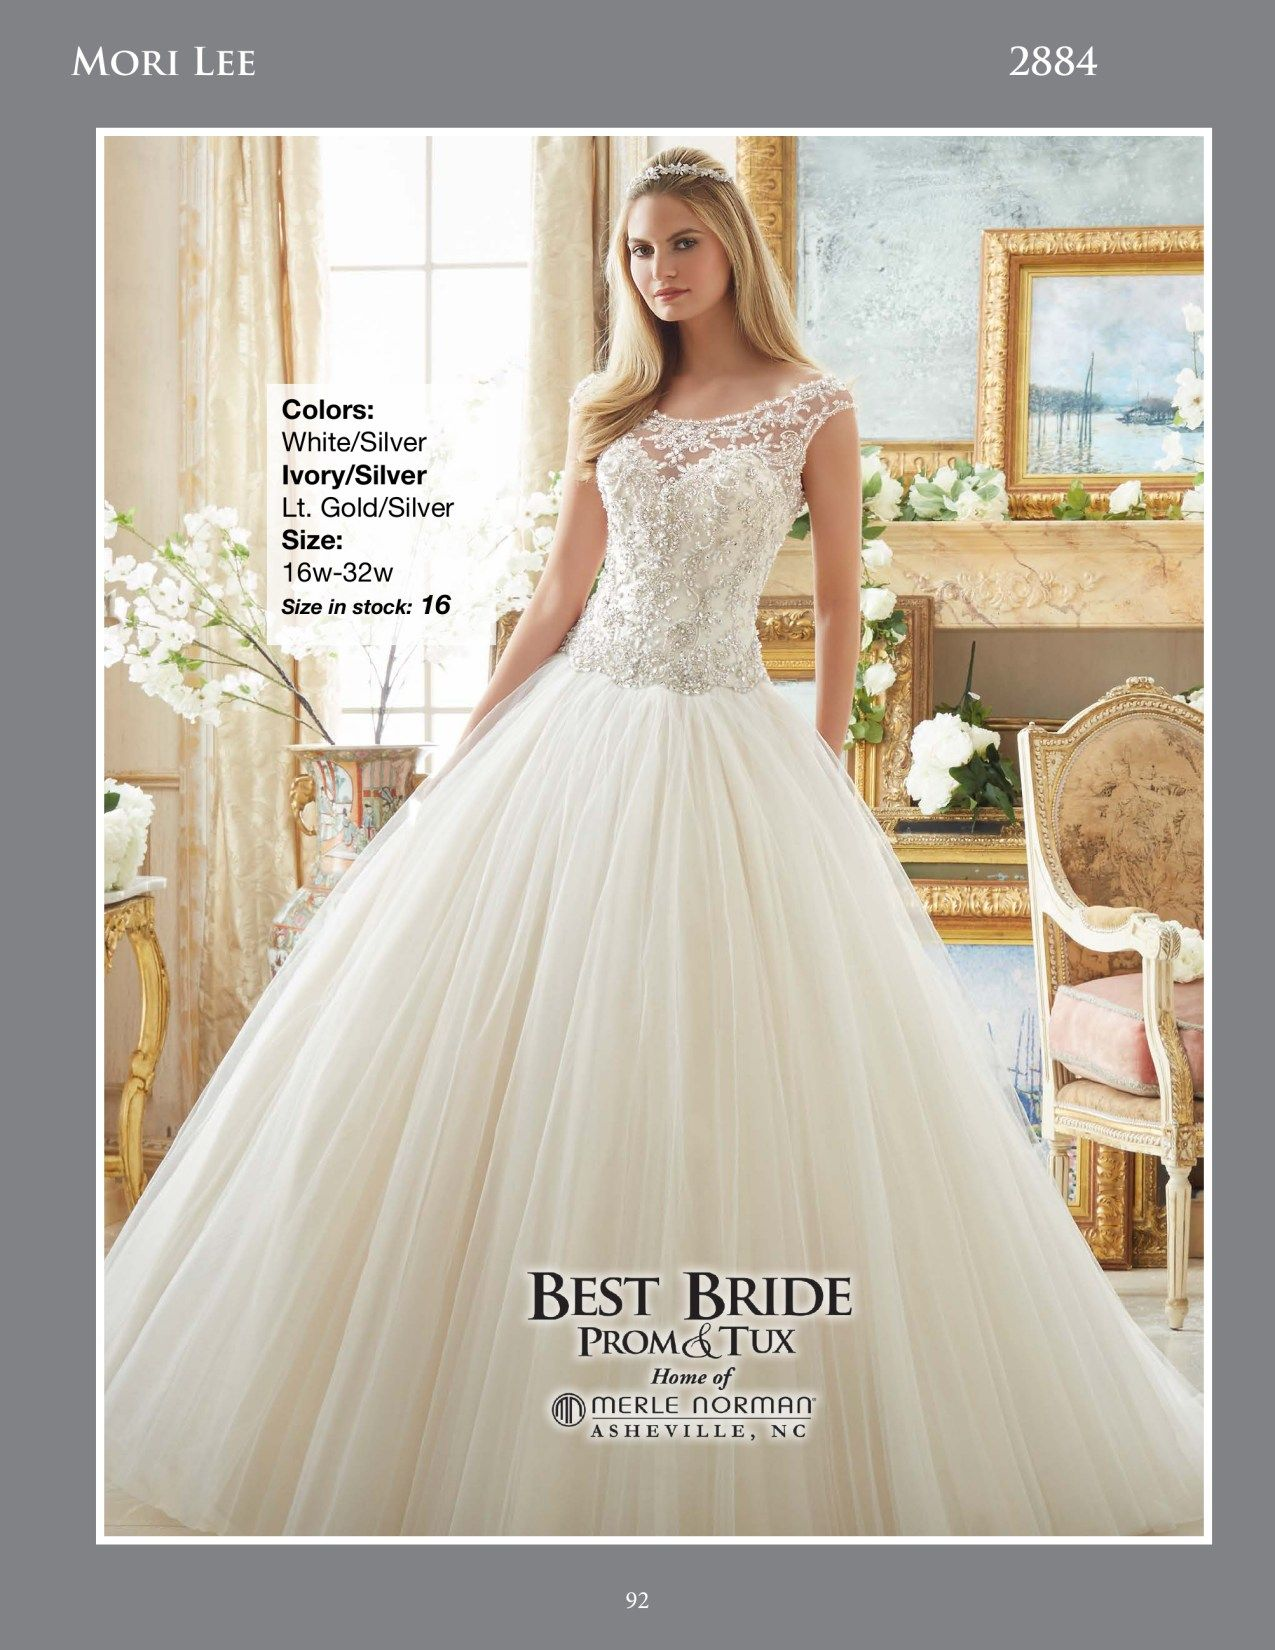 Ball gown wedding dress with sleeves  Crystal Beaded Embroidery on Tulle Ball Gown Wedding Dress Mori Lee